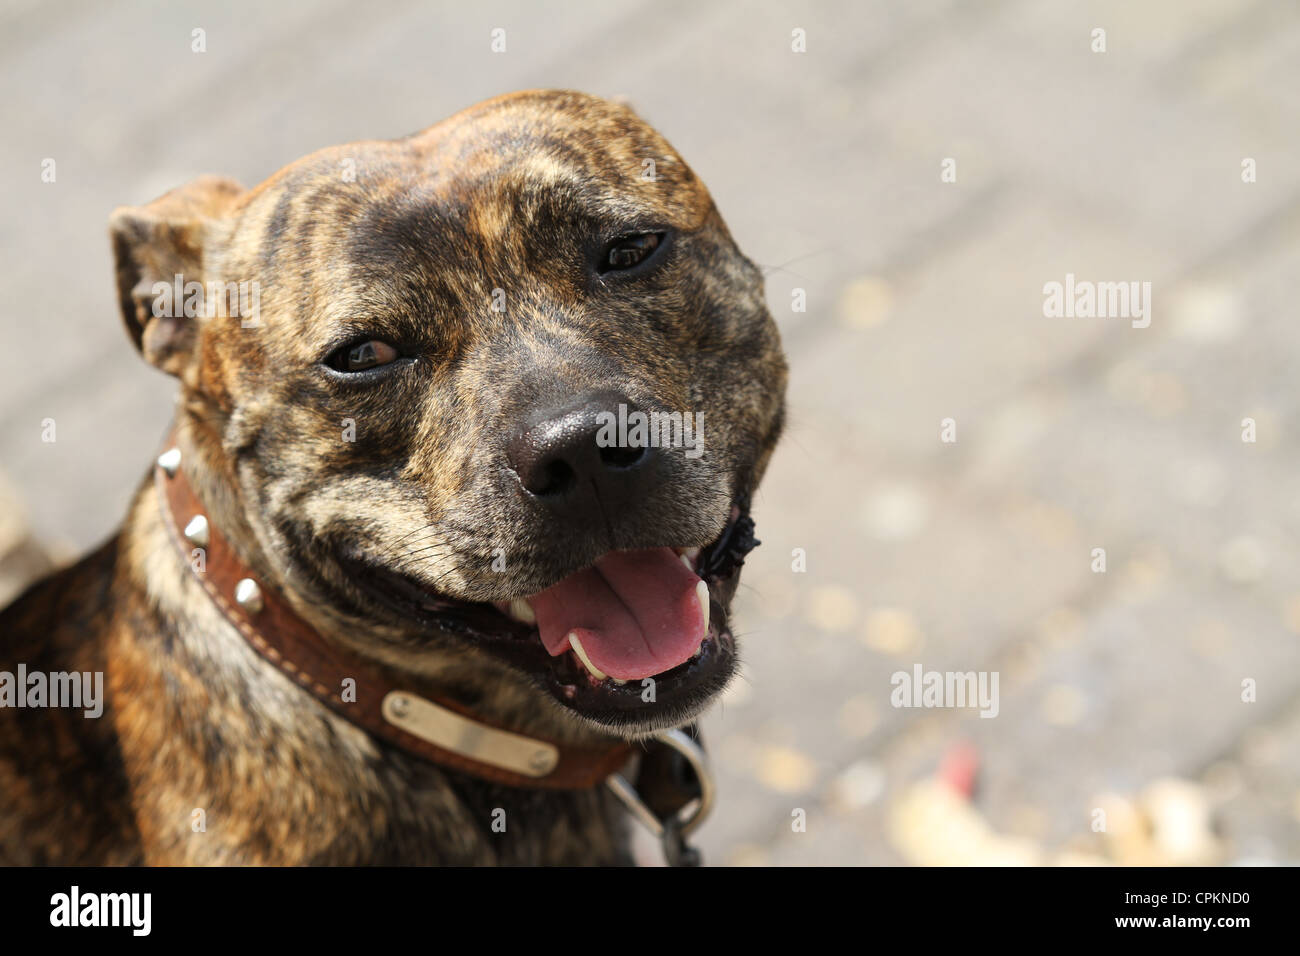 Staffordshire Bull Terrier Staffie Dog - Stock Image